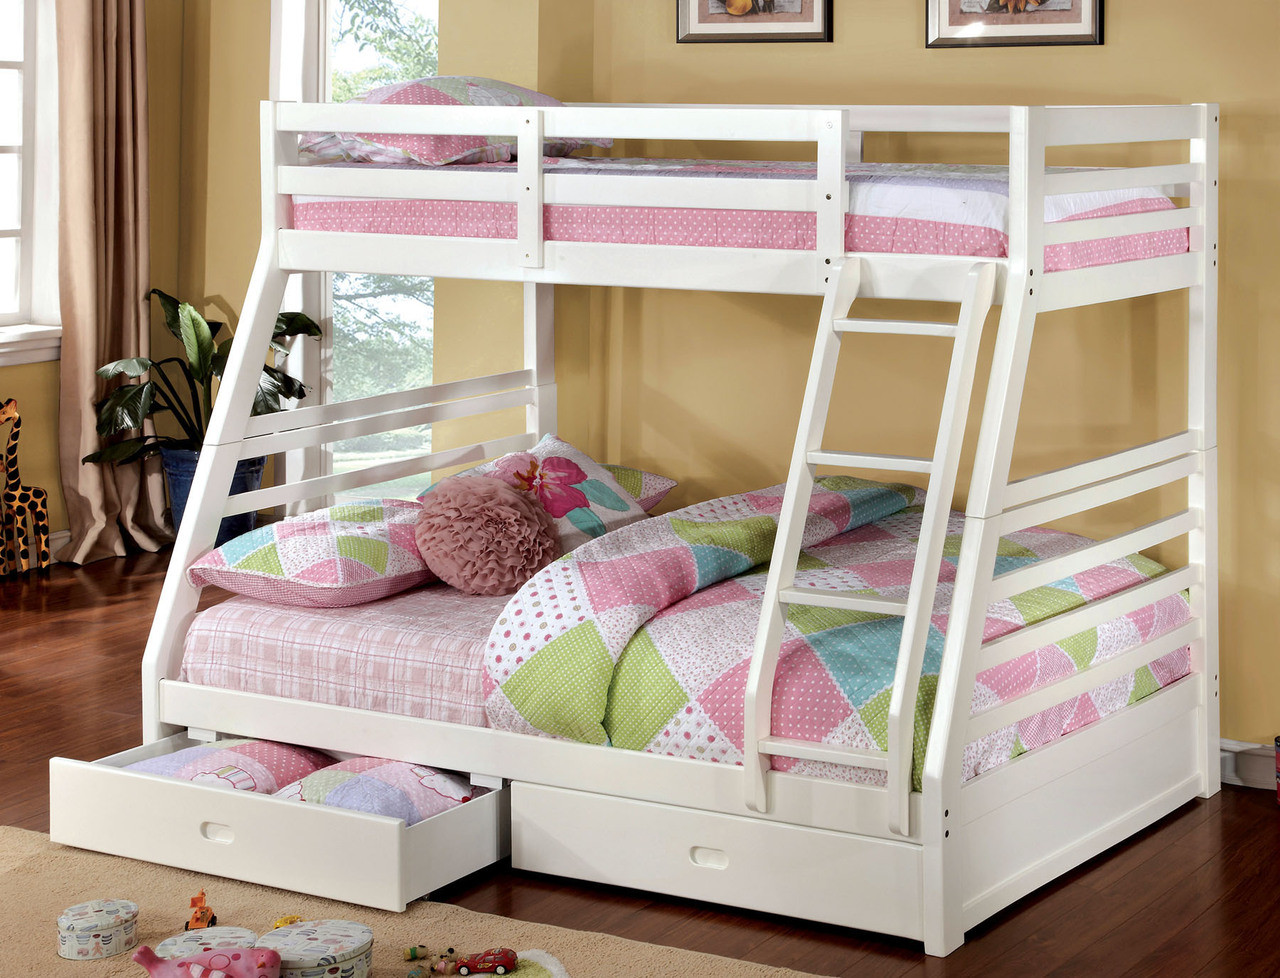 Makaio White Wood Twin Over Full Bunk Bed With Drawers For